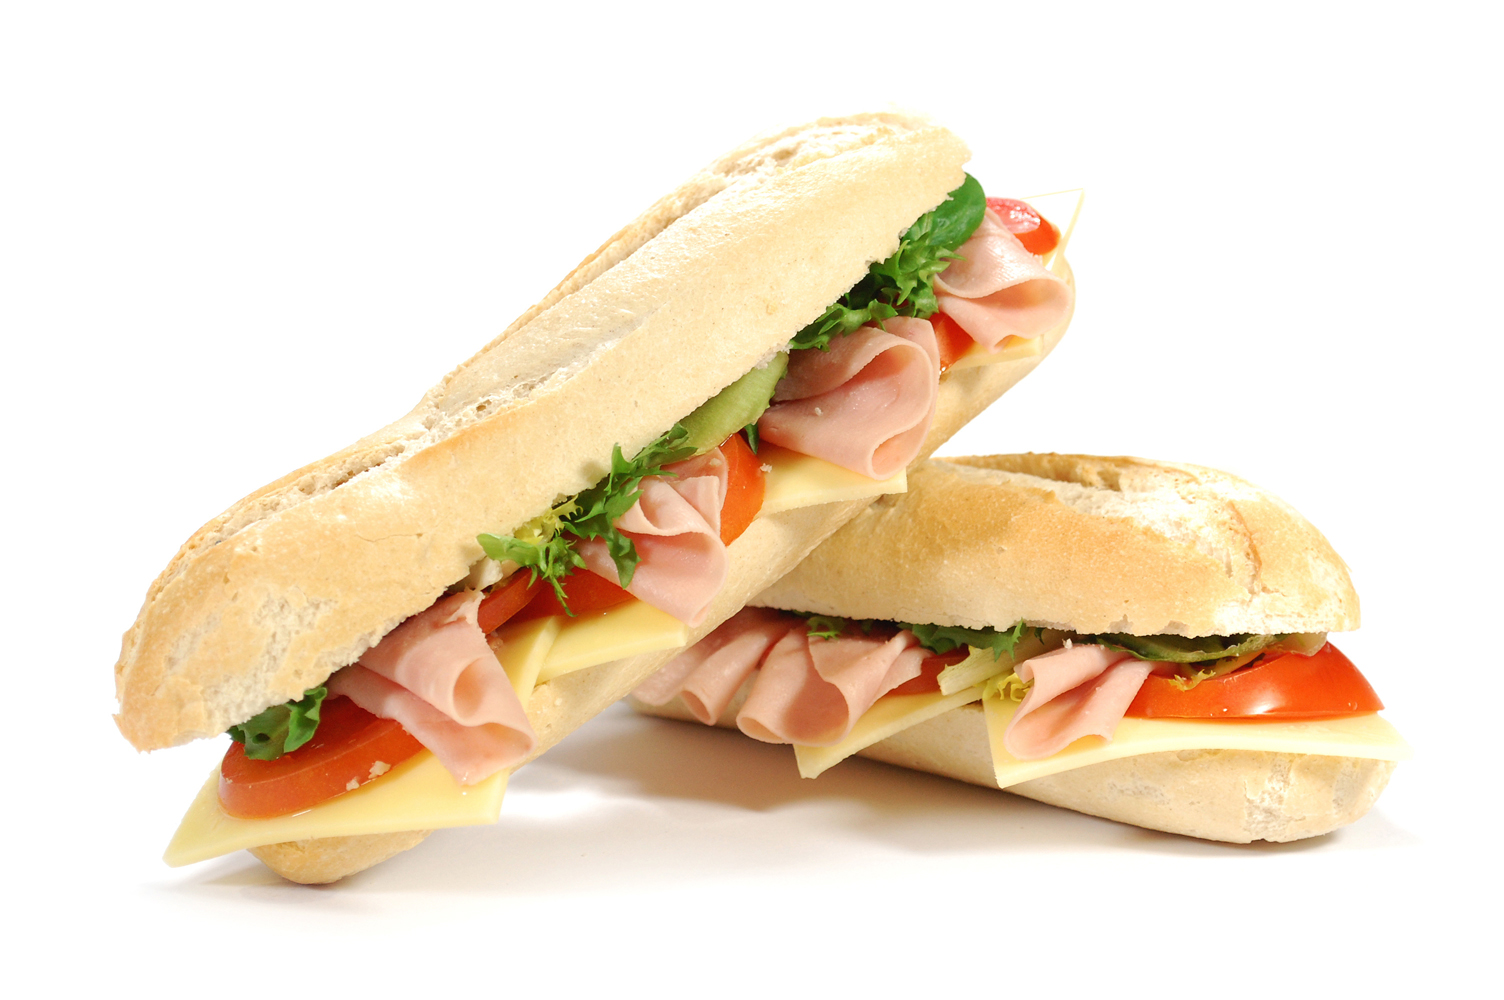 Large sub sandwich isolated on white